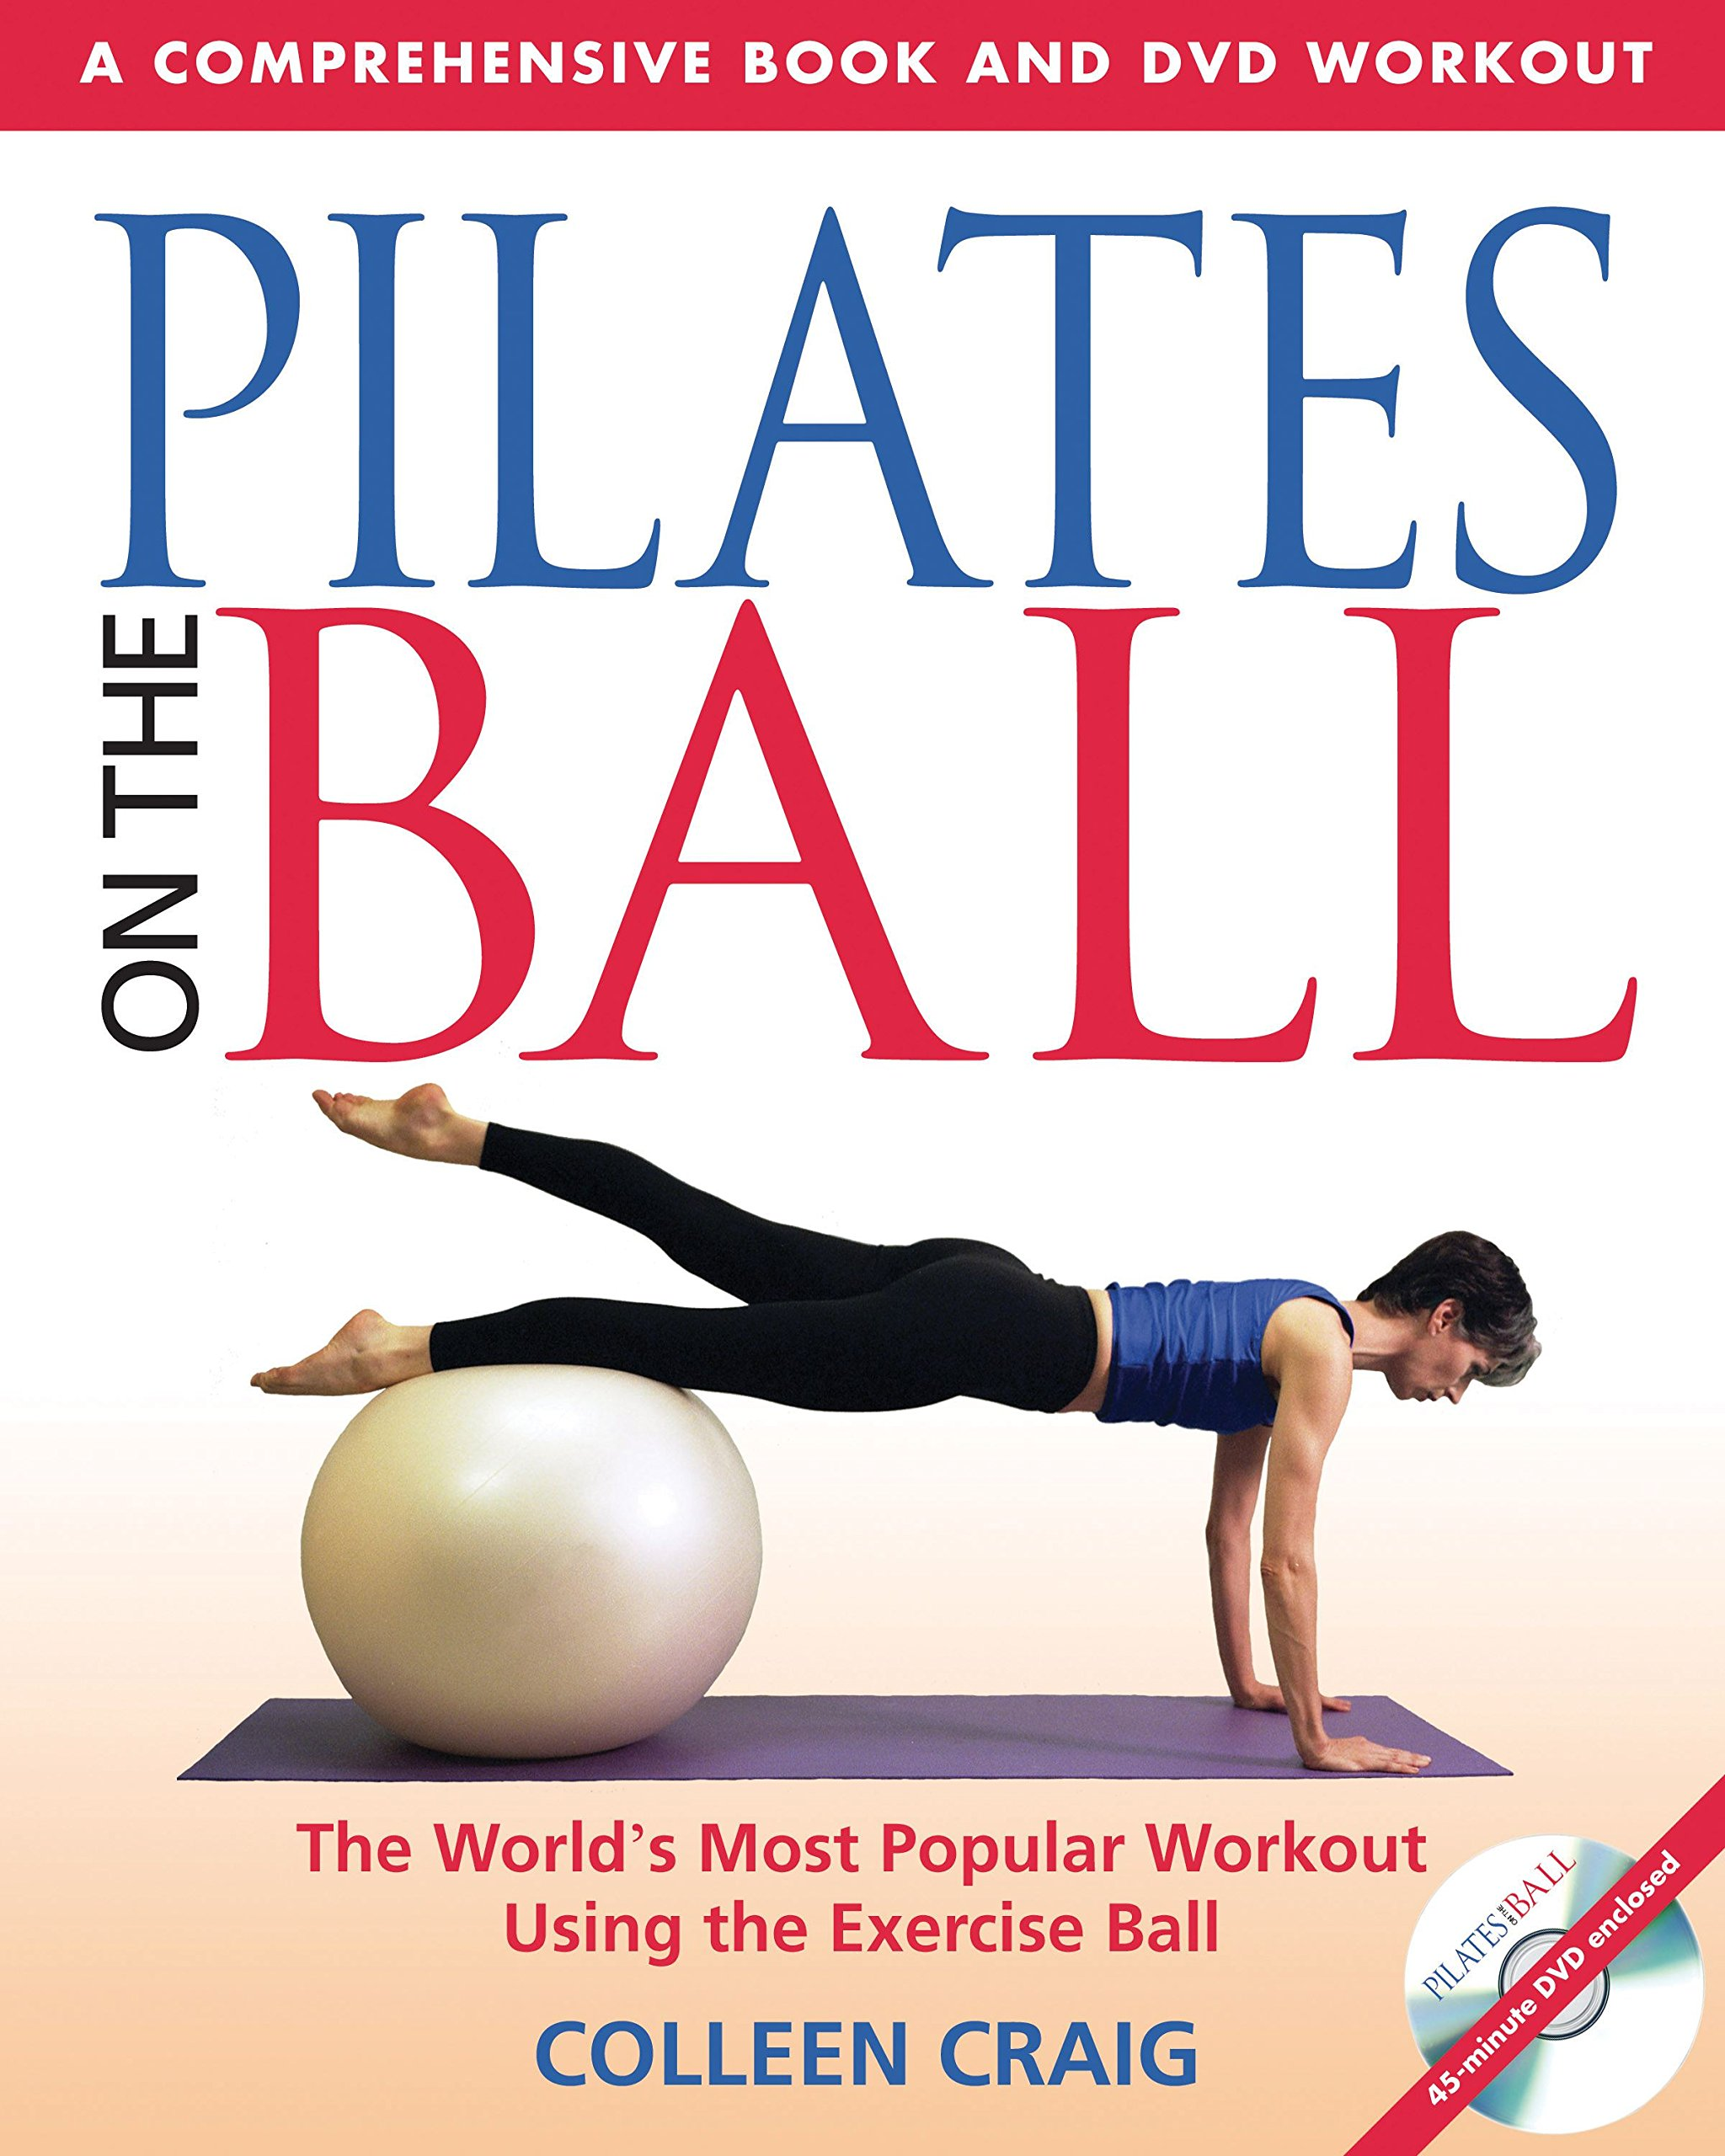 Pilates Ball Popular Workout Exercise product image